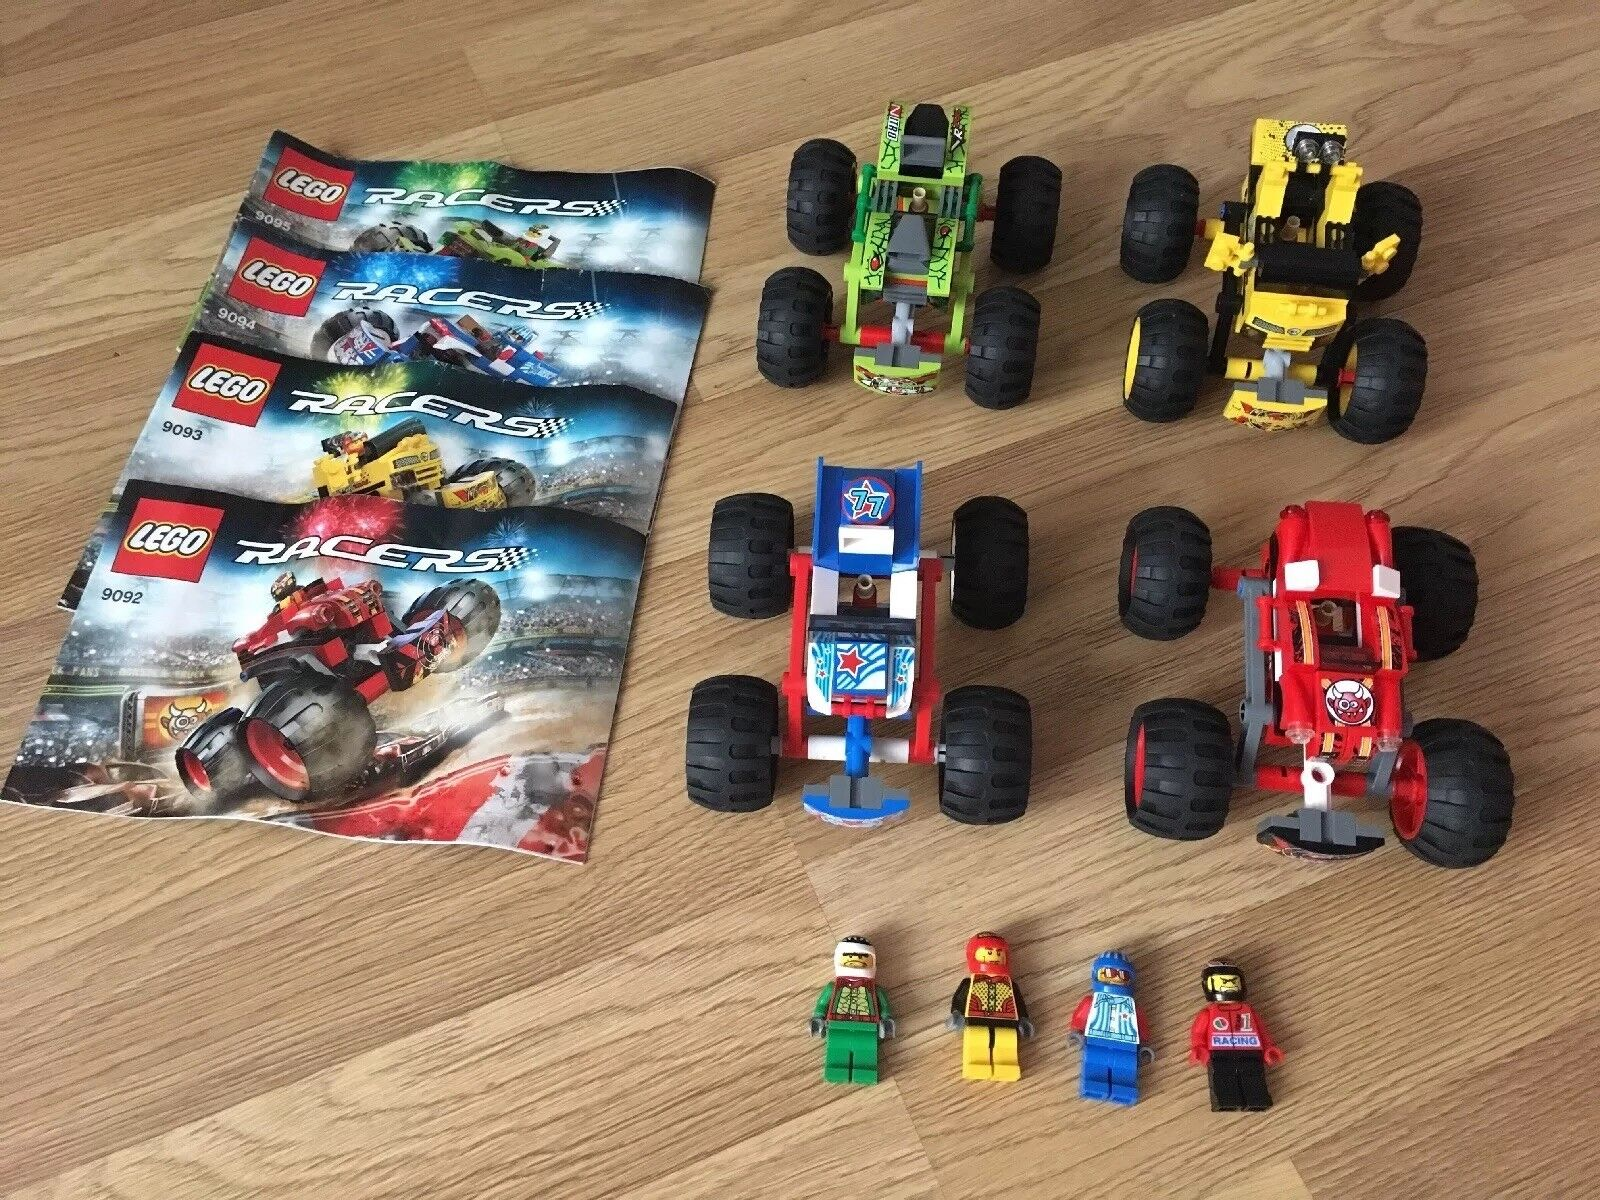 4x LEGO Racers cars CRASHES  No 9092 9093 9094 9095 Racing Cars As Pictured